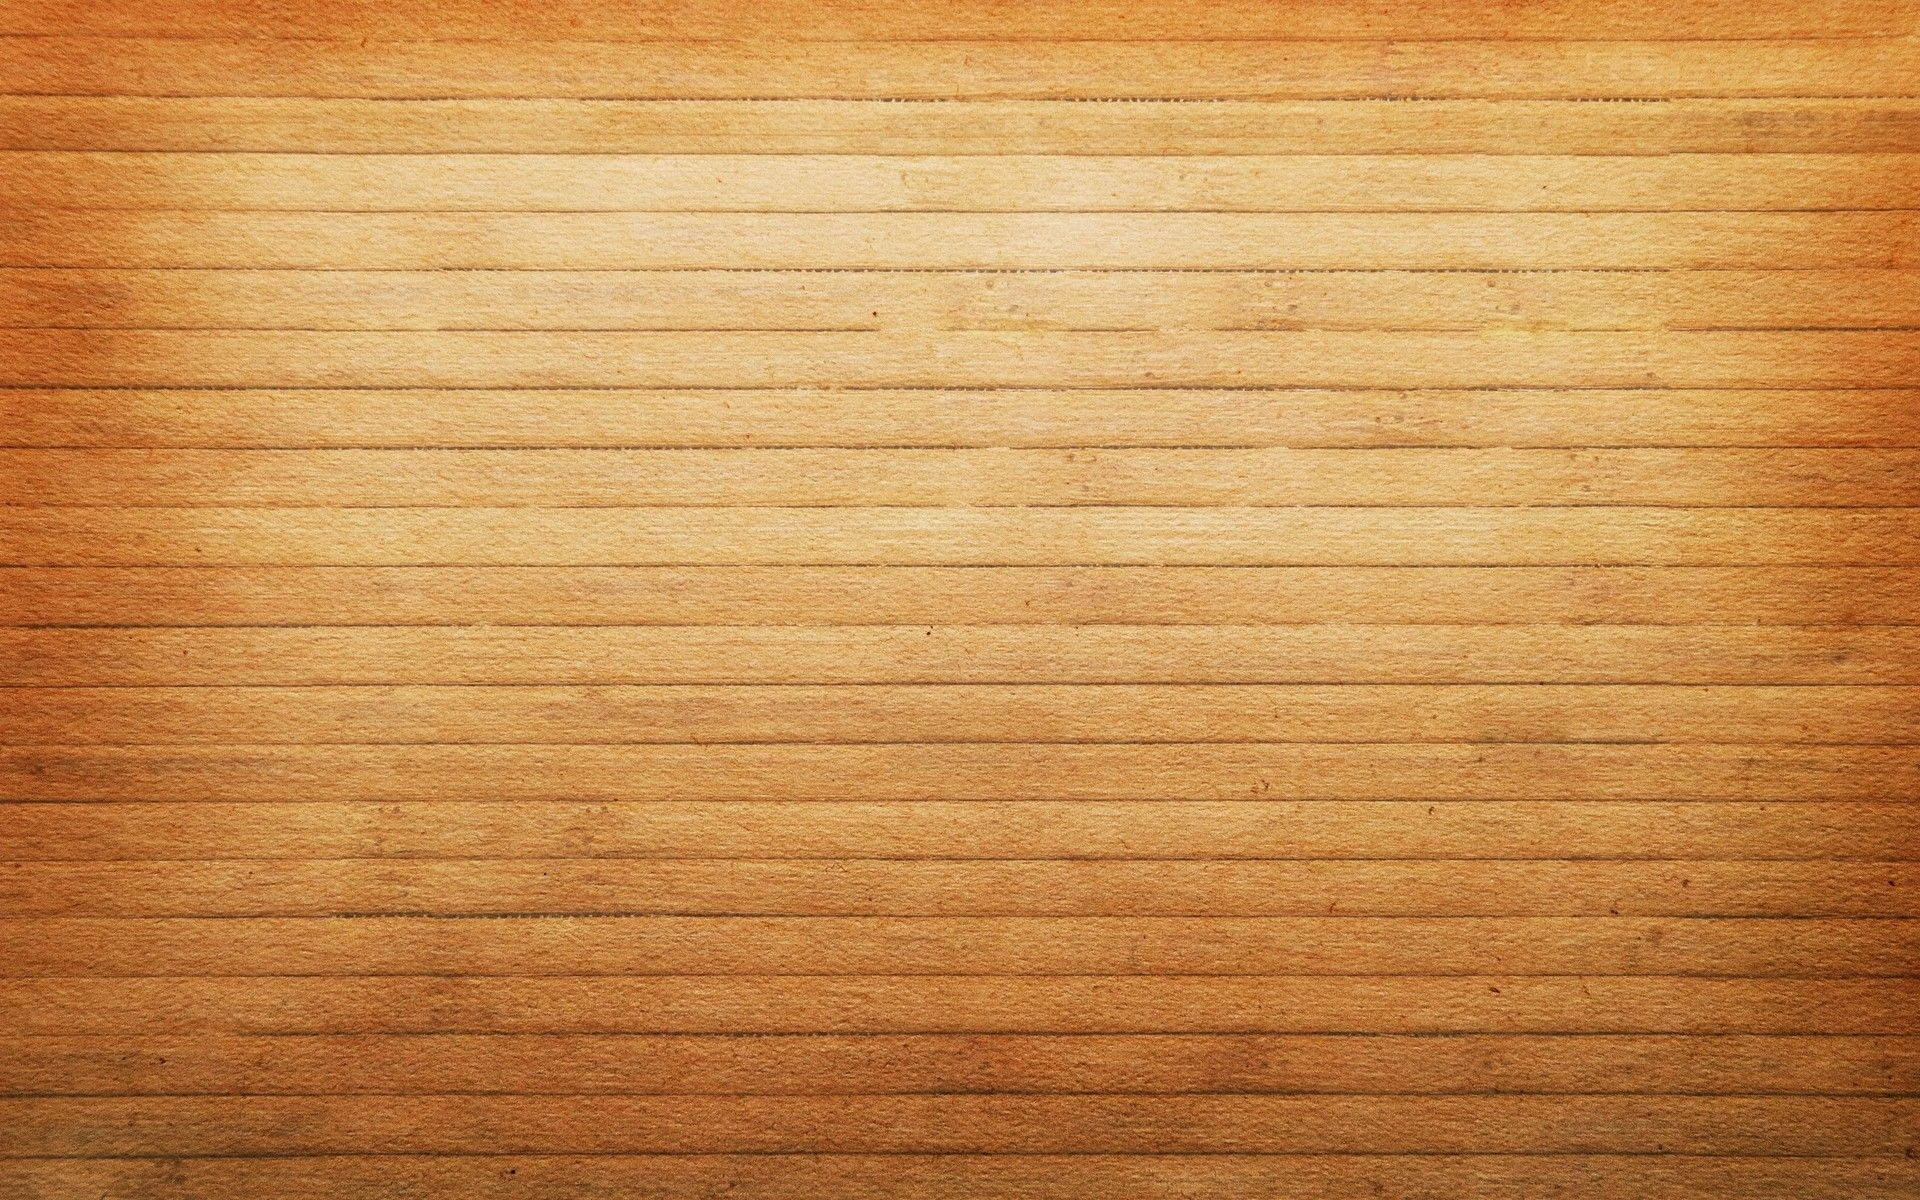 collection of wood wallpaper hd on hdwallpapers 1920×1200 wooden